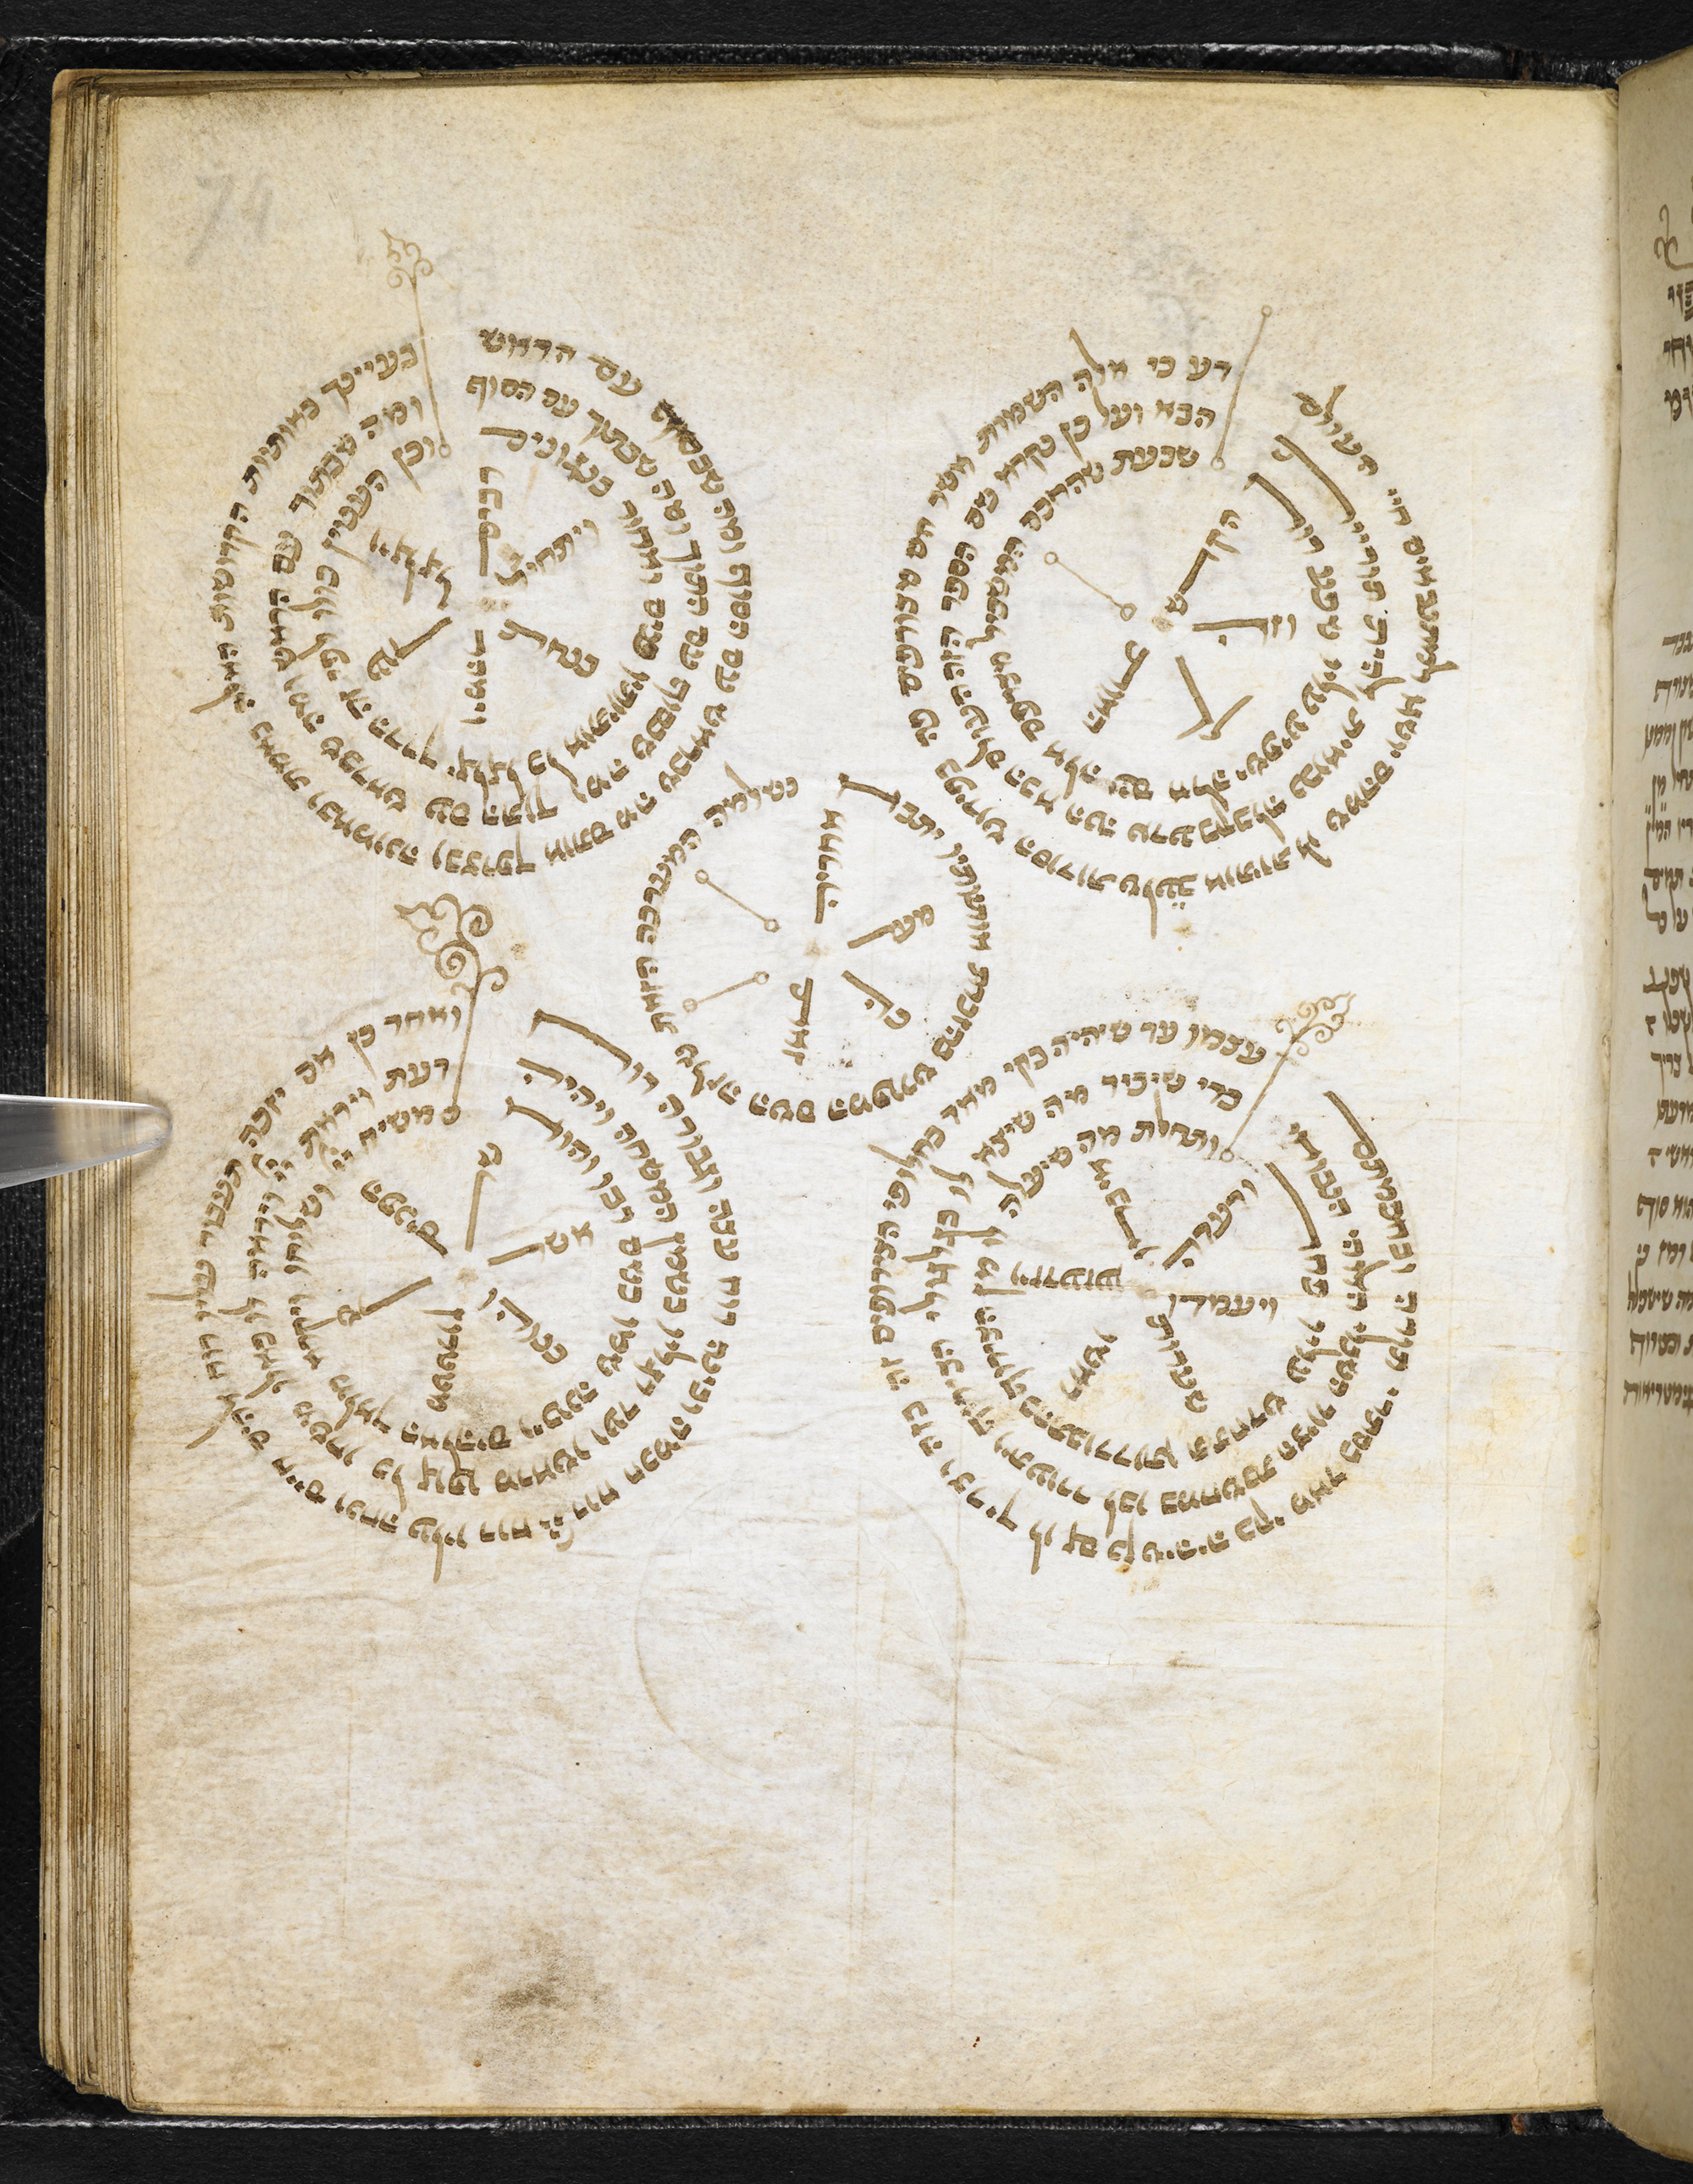 Abulafia's commentary on the 72-letter divine name, with circular diagrams for permutations following, Or 4596, Hebrew Manuscripts Digitisation Project, British Library